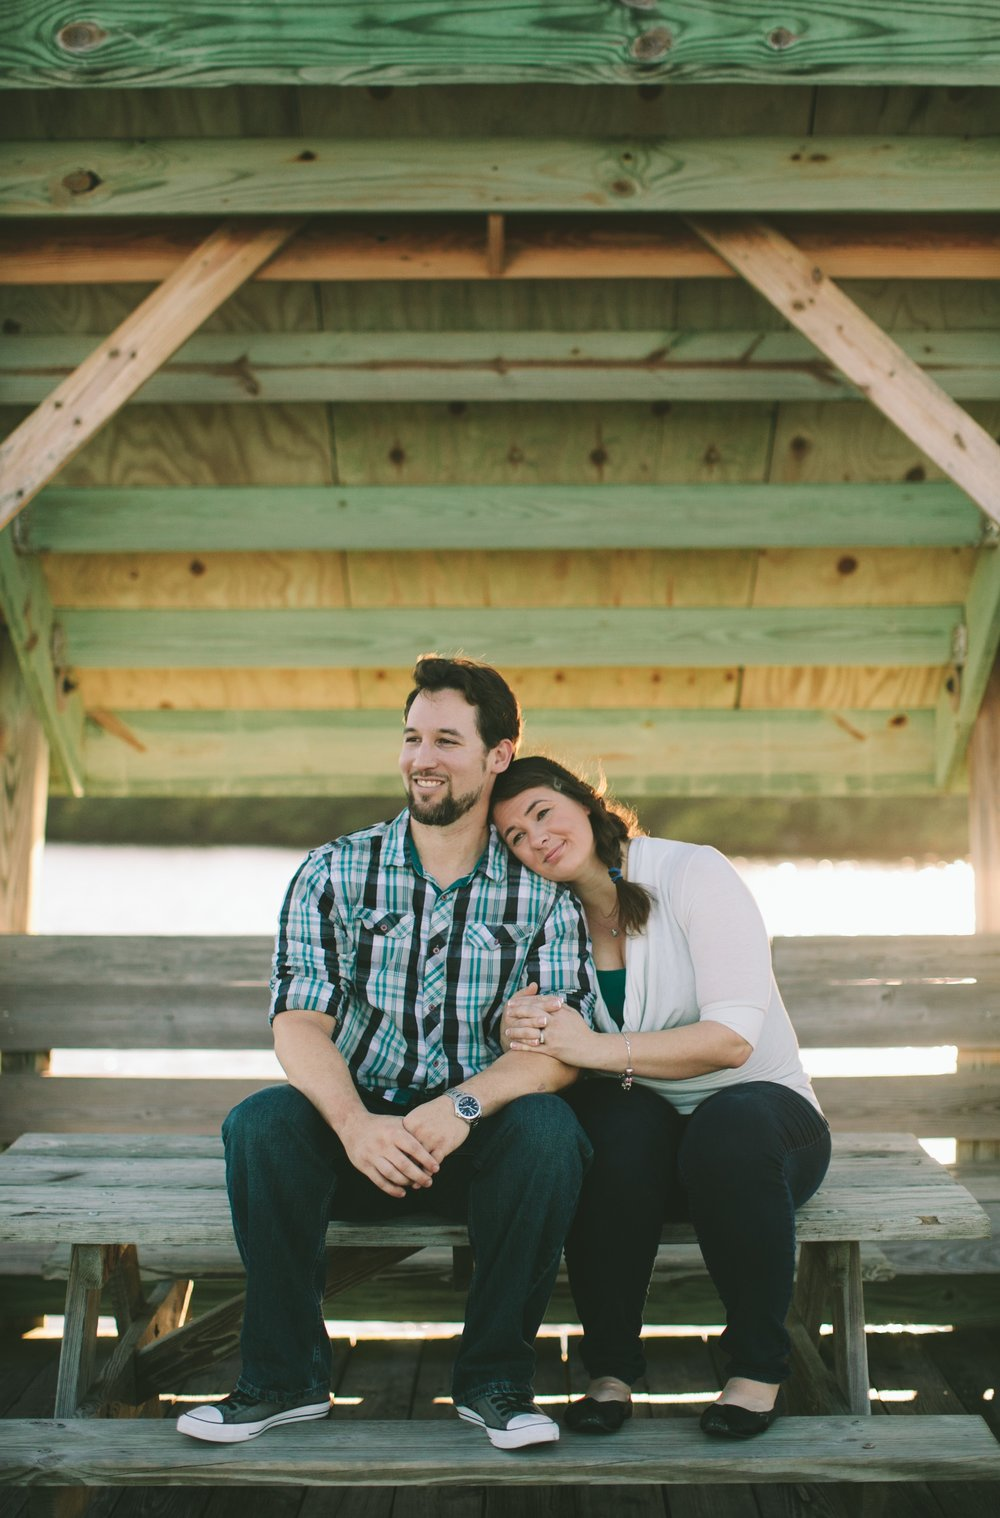 Nichole + Ryan Palm Beach Engagement Shoot9.jpg